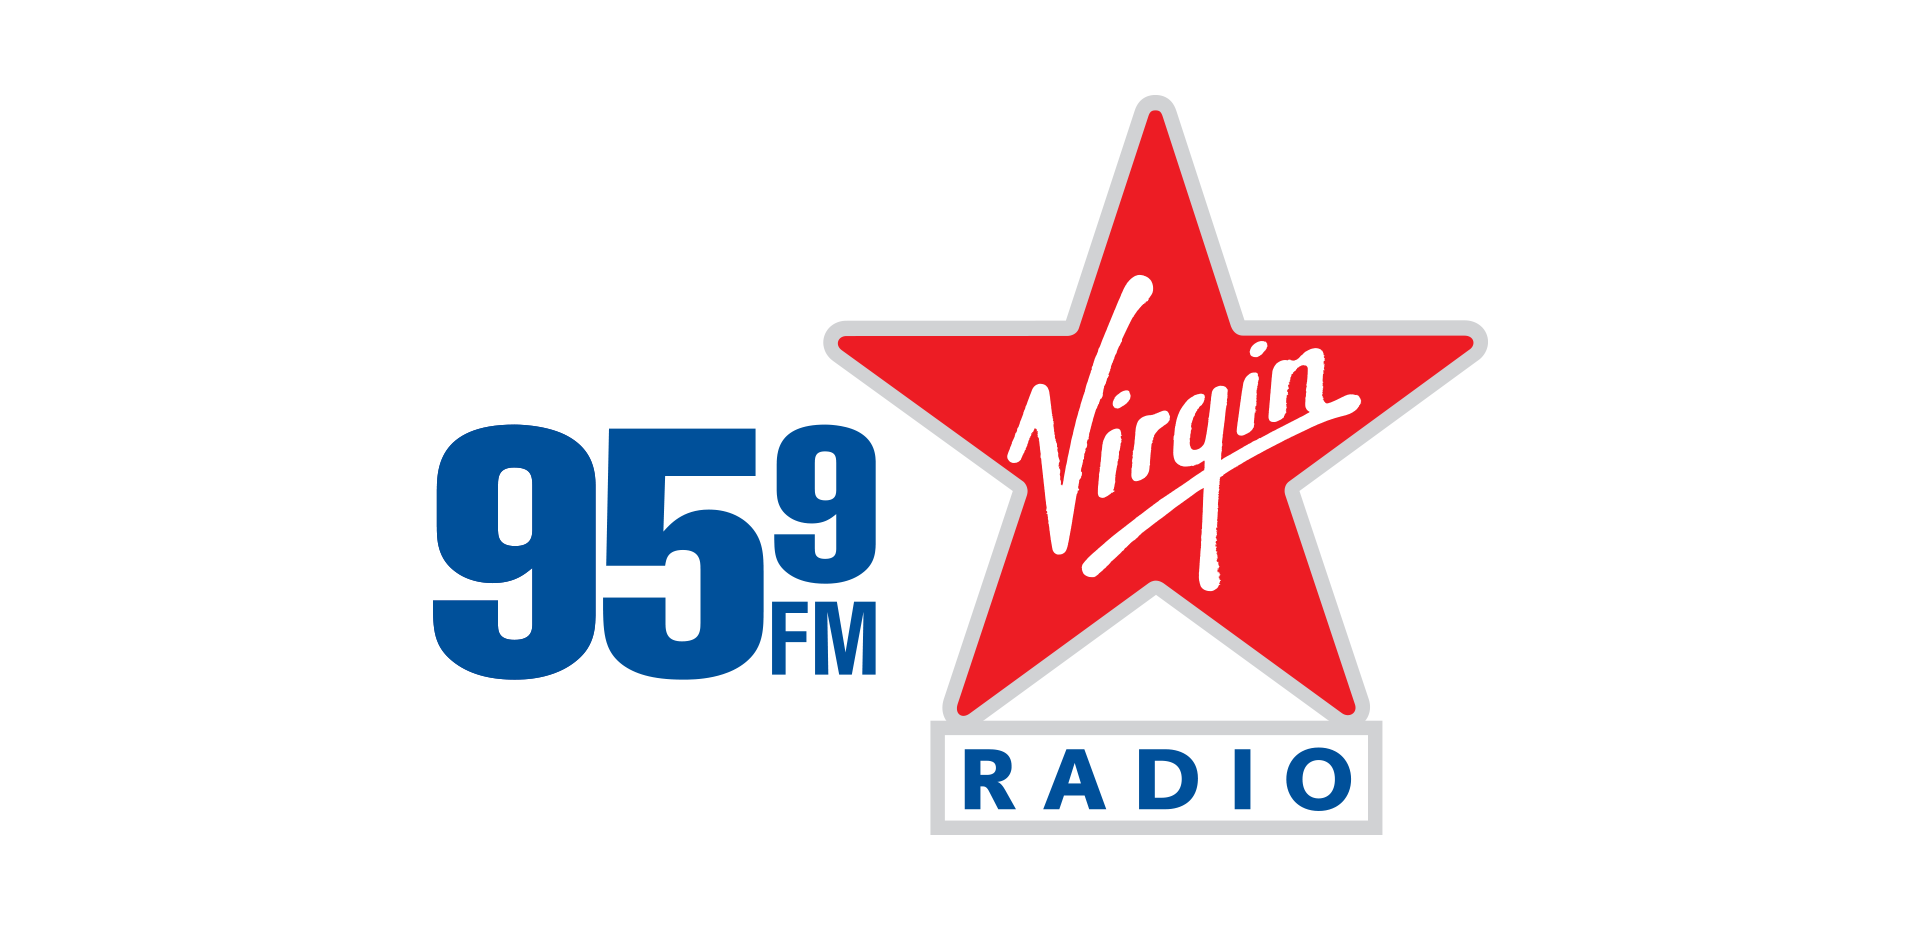 Vinny Barrucco and Shannon King : The New Morning Team on 95 9